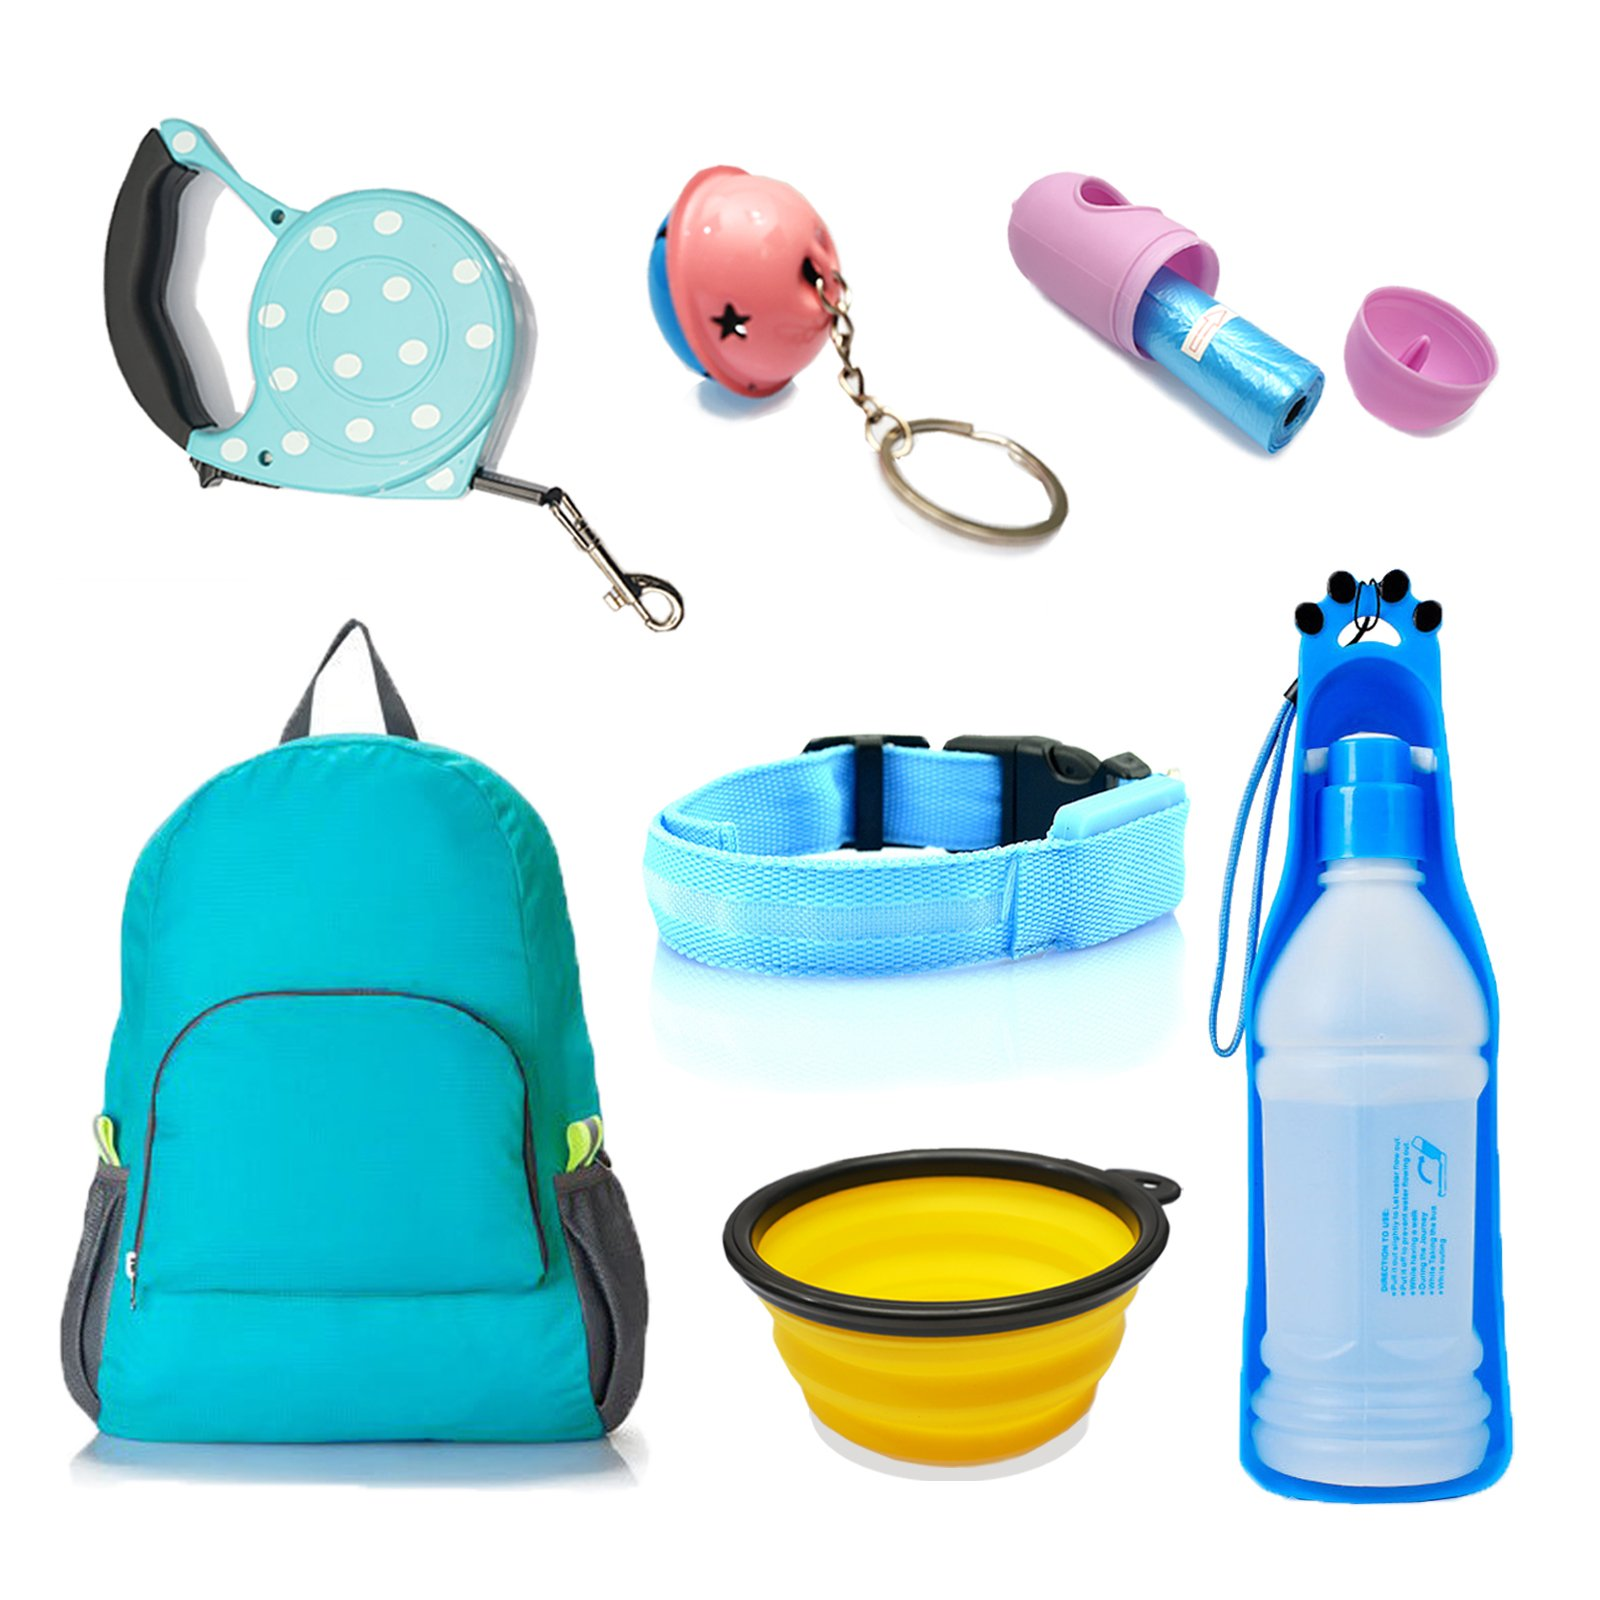 Pet Water Bottles & Collapsible Travel Bowls, Dog Cat Retractable Leash & Travel Backpack, LED Safety Dog Collar & Poop Bag, Pet Outdoor Kits